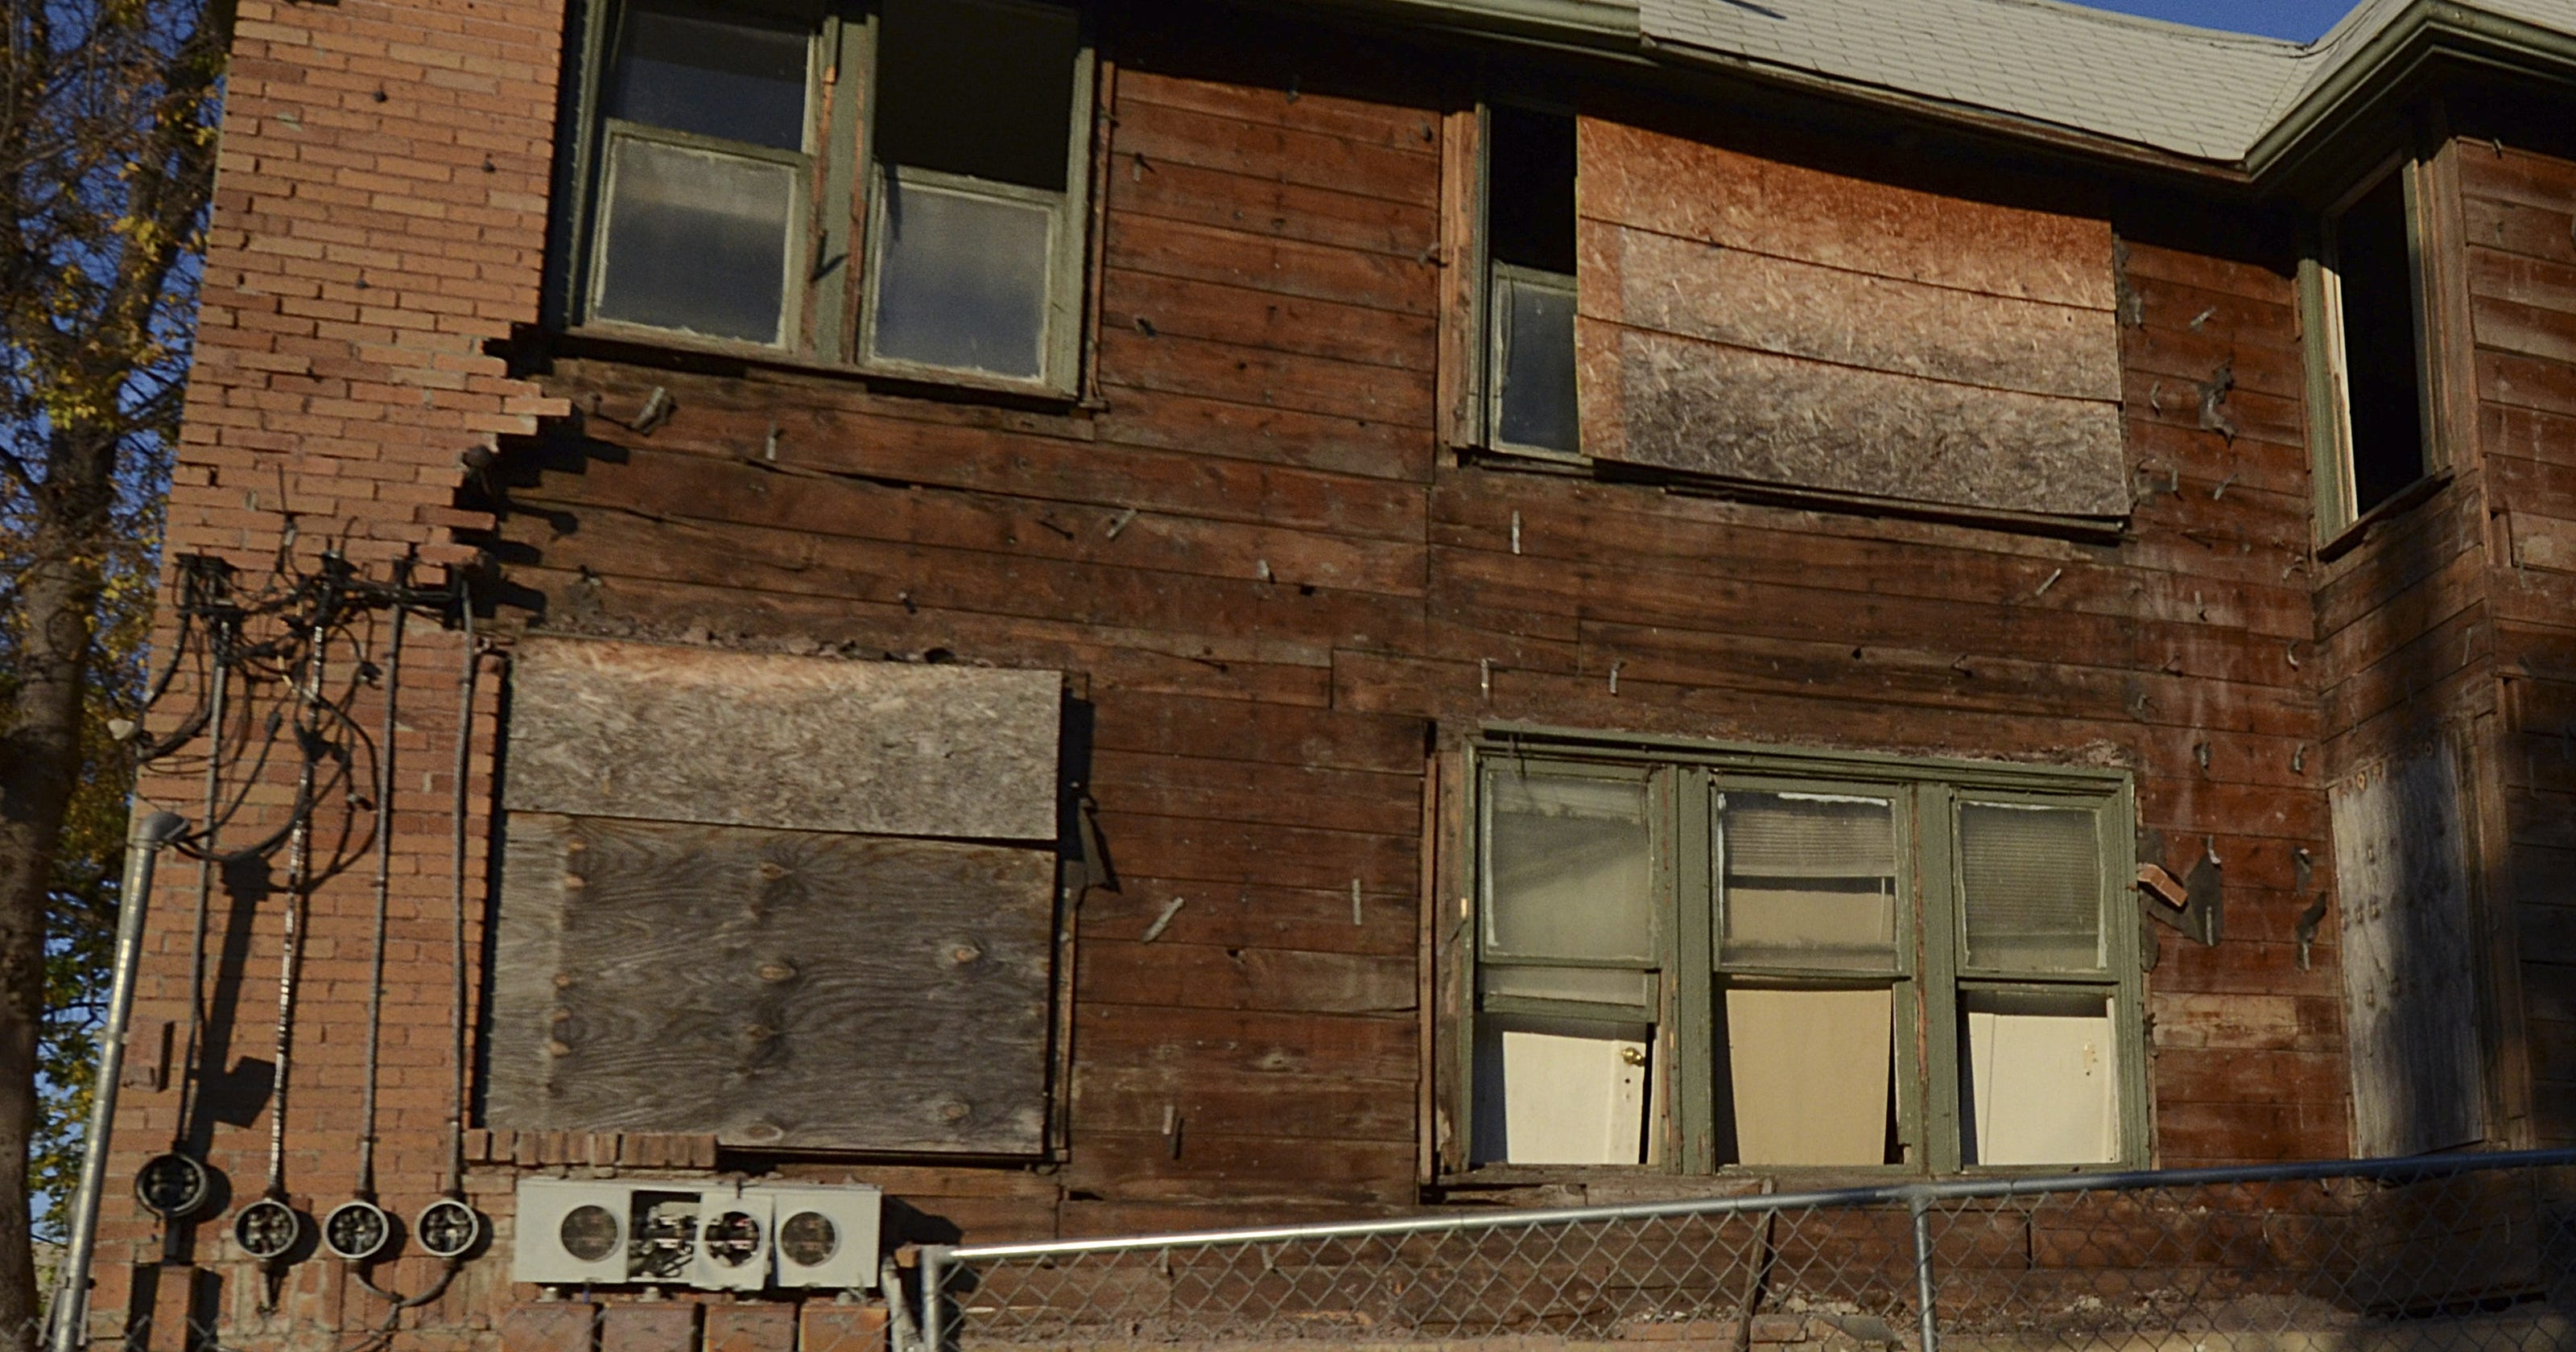 Apartment where Lee Harvey Oswald lived being demolished